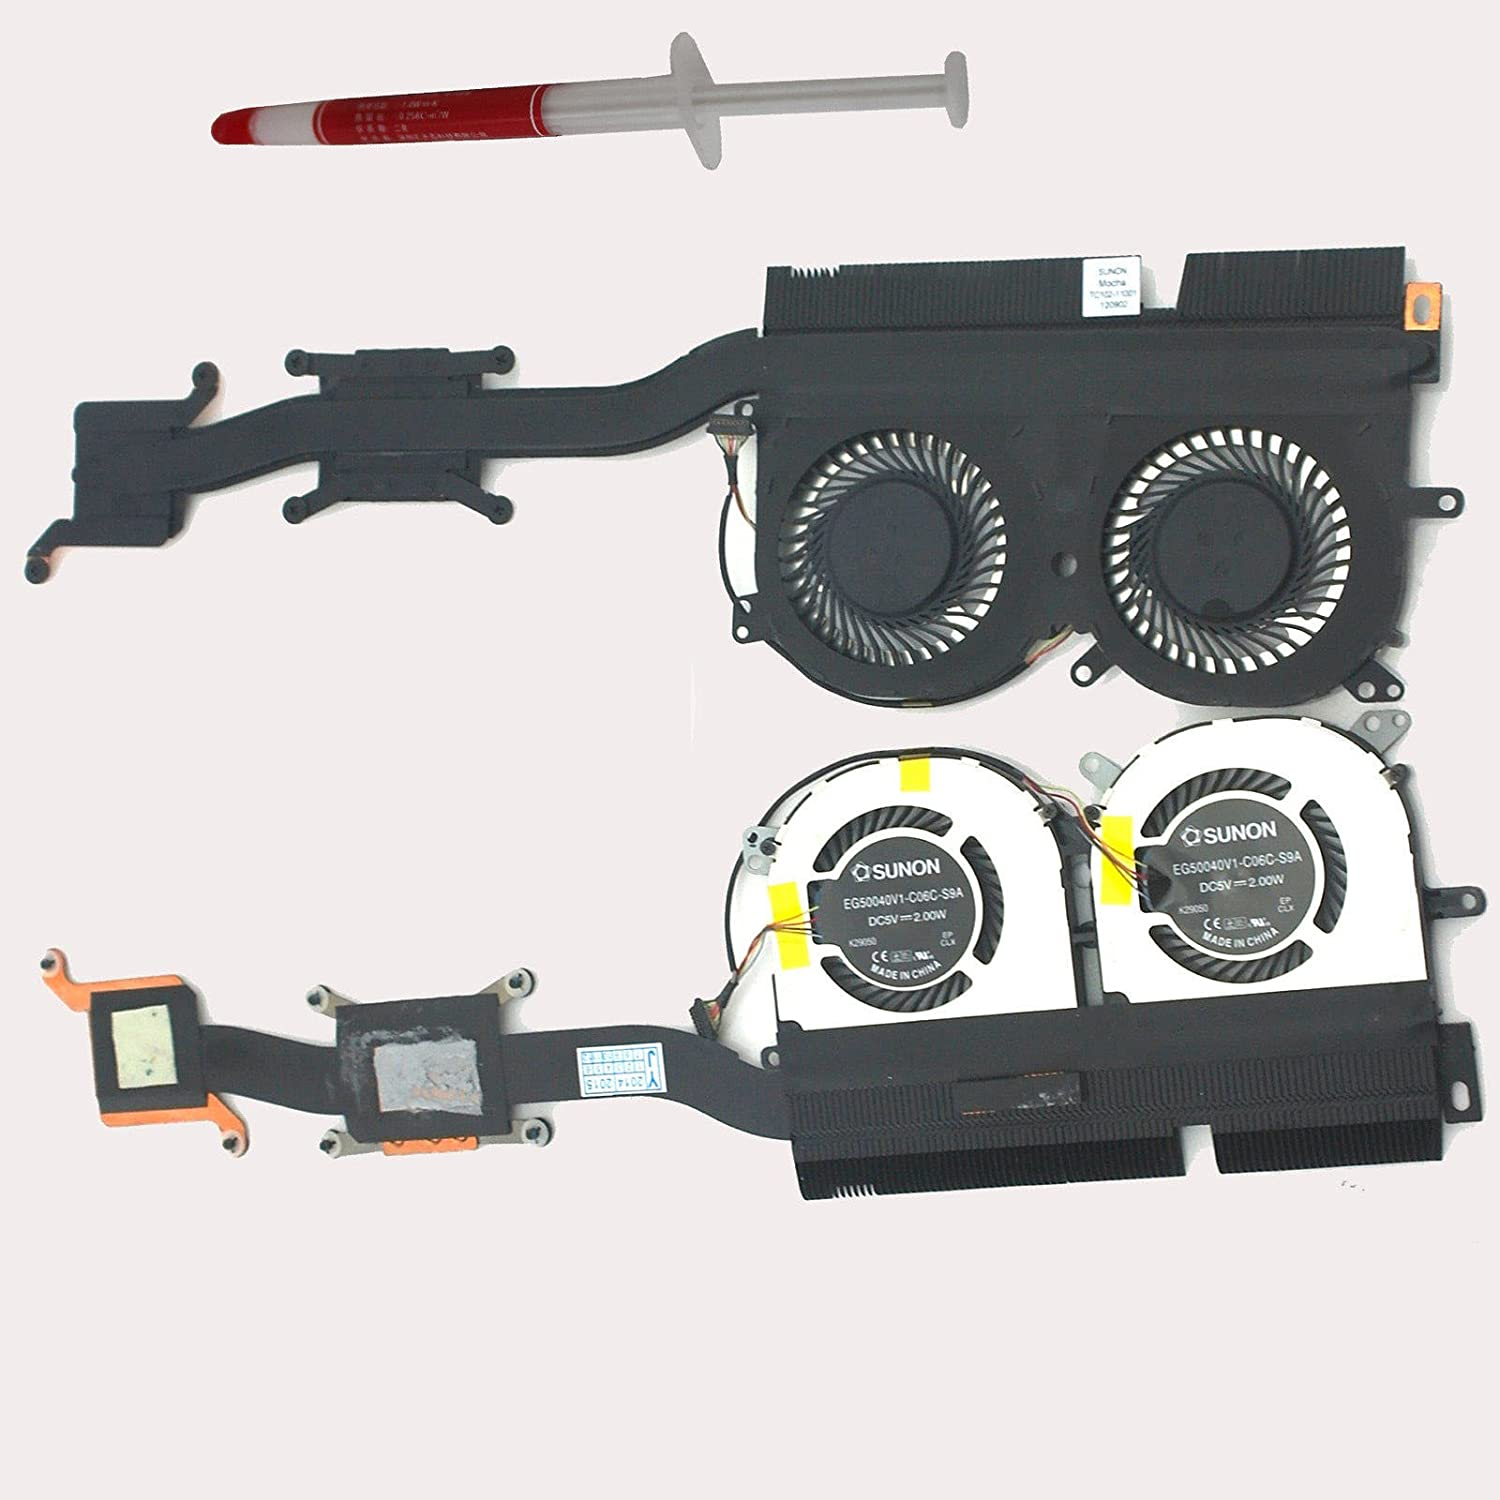 Gametown Laptop CPU Cooling Fan & Heatsink For Lenovo IdeaPad Yoga 13 Series Replacement Part Number EG50040V1-C06C-S9A